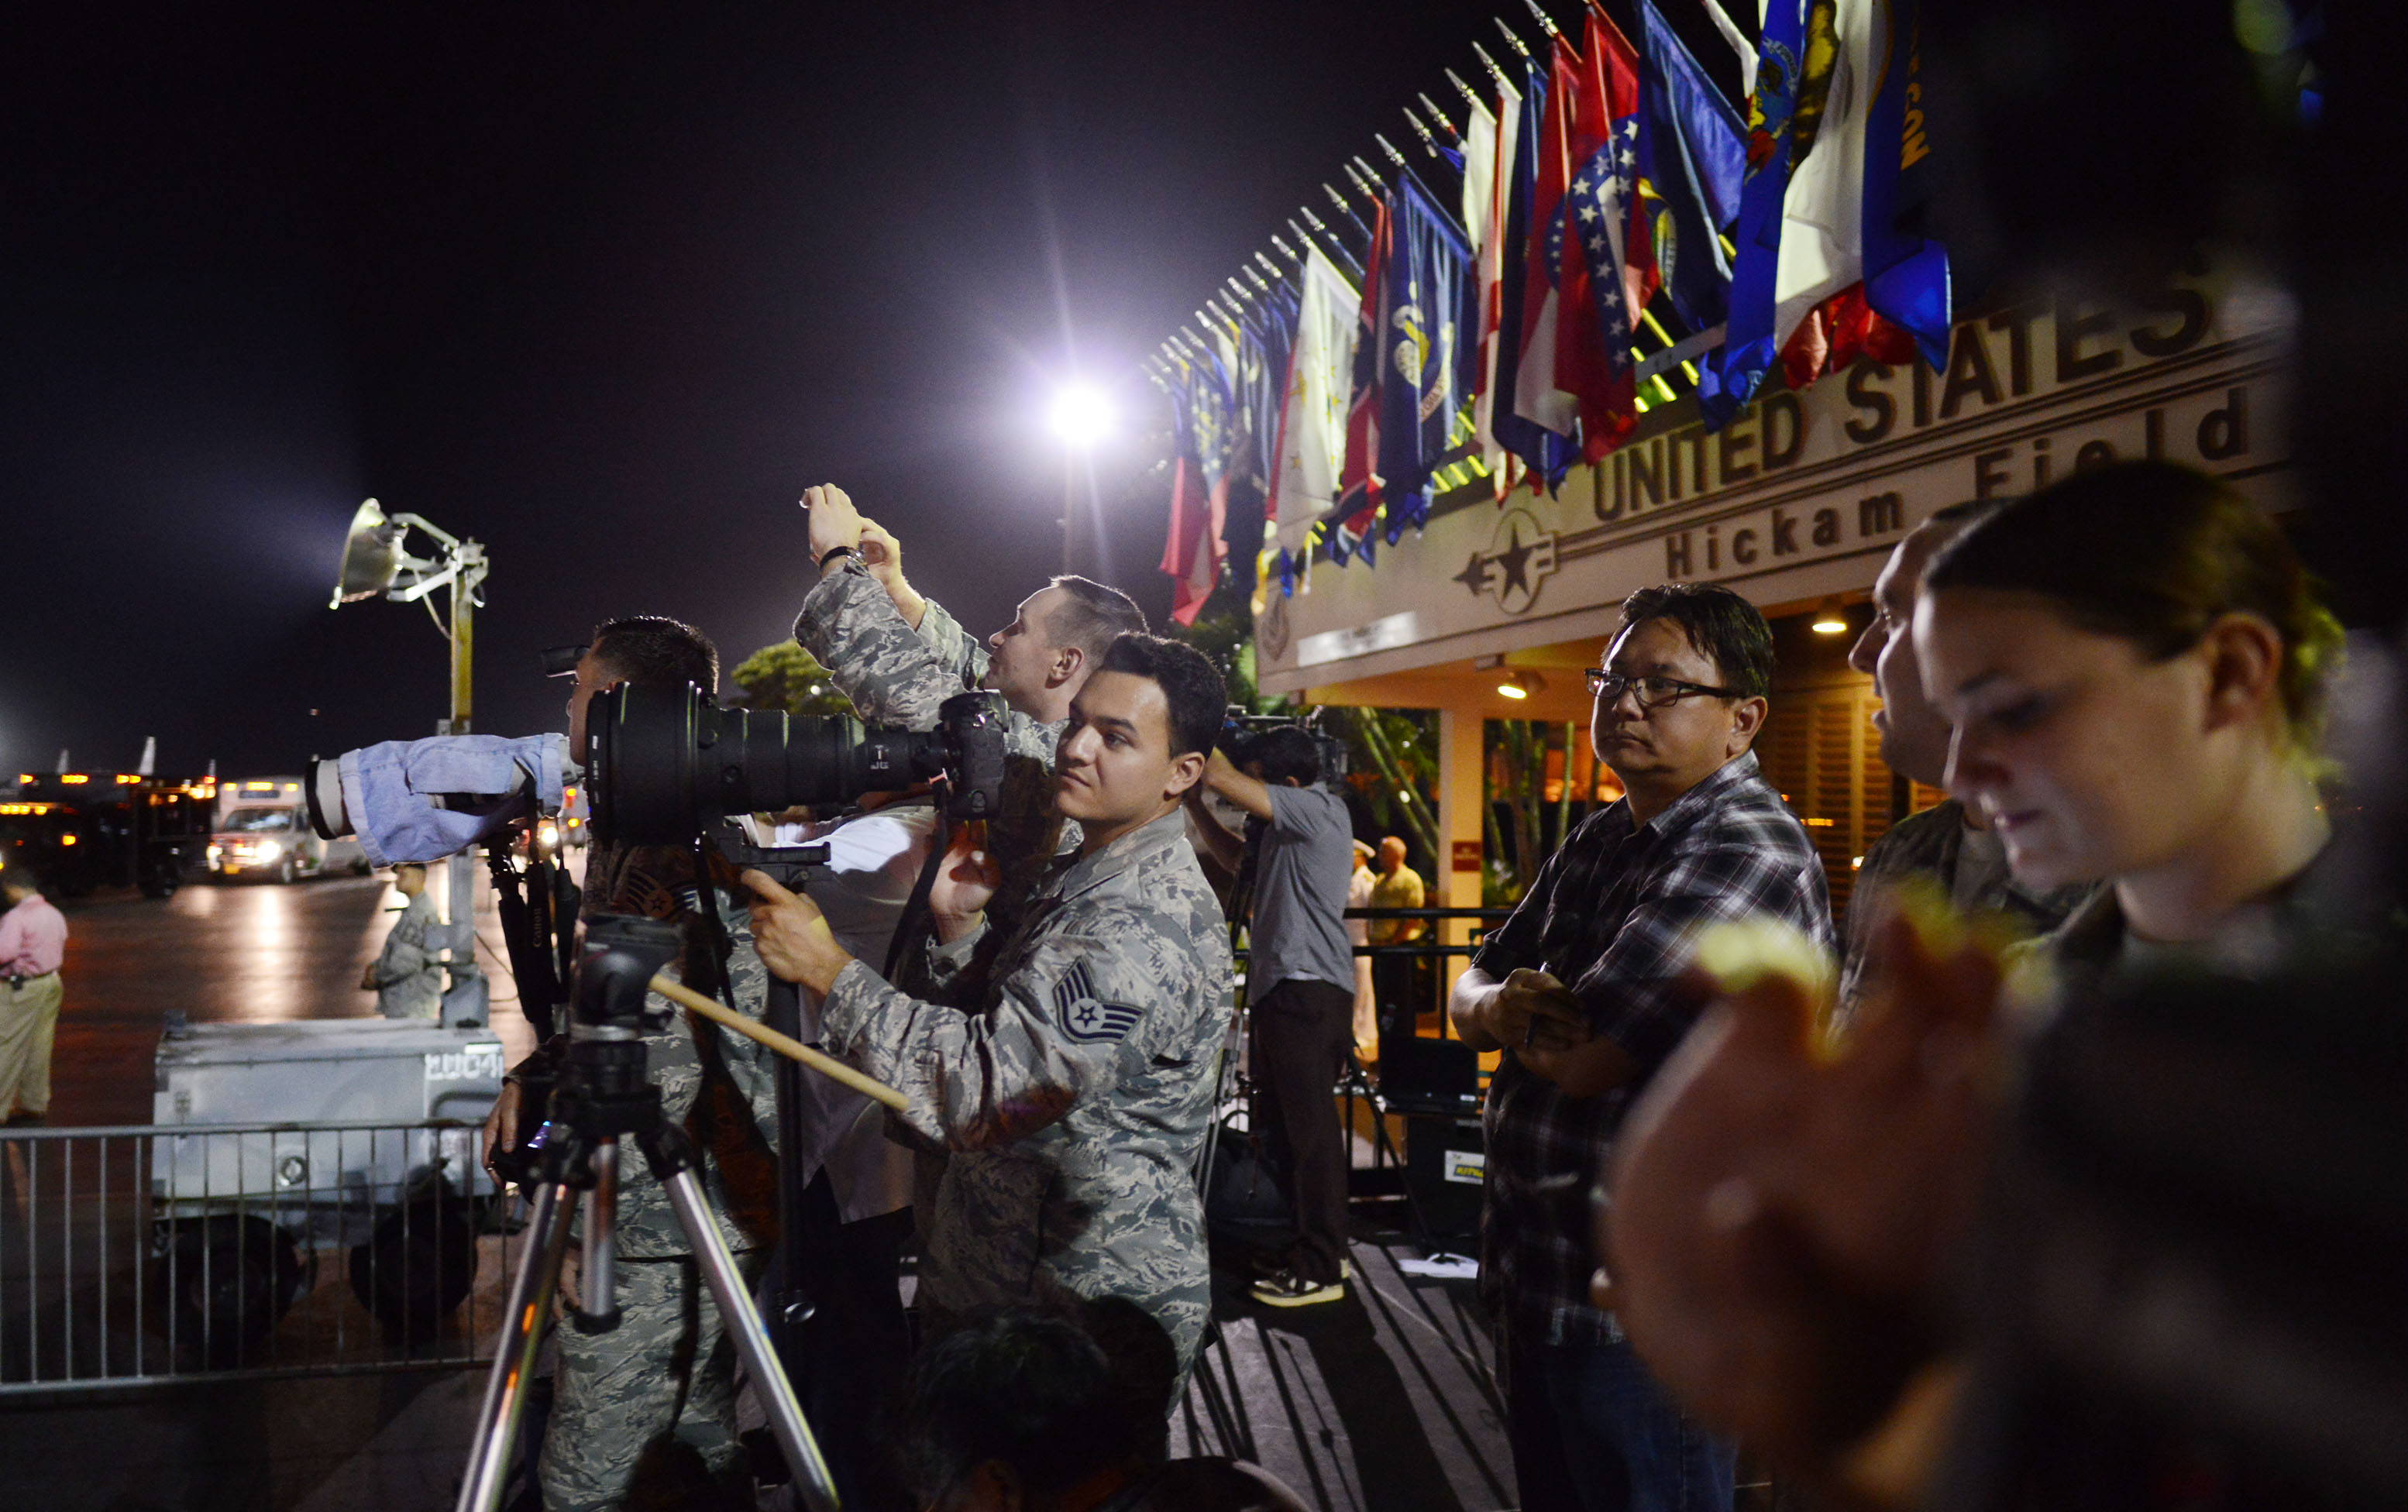 Military photographers and members of the media watch the arrival of Air Force One.